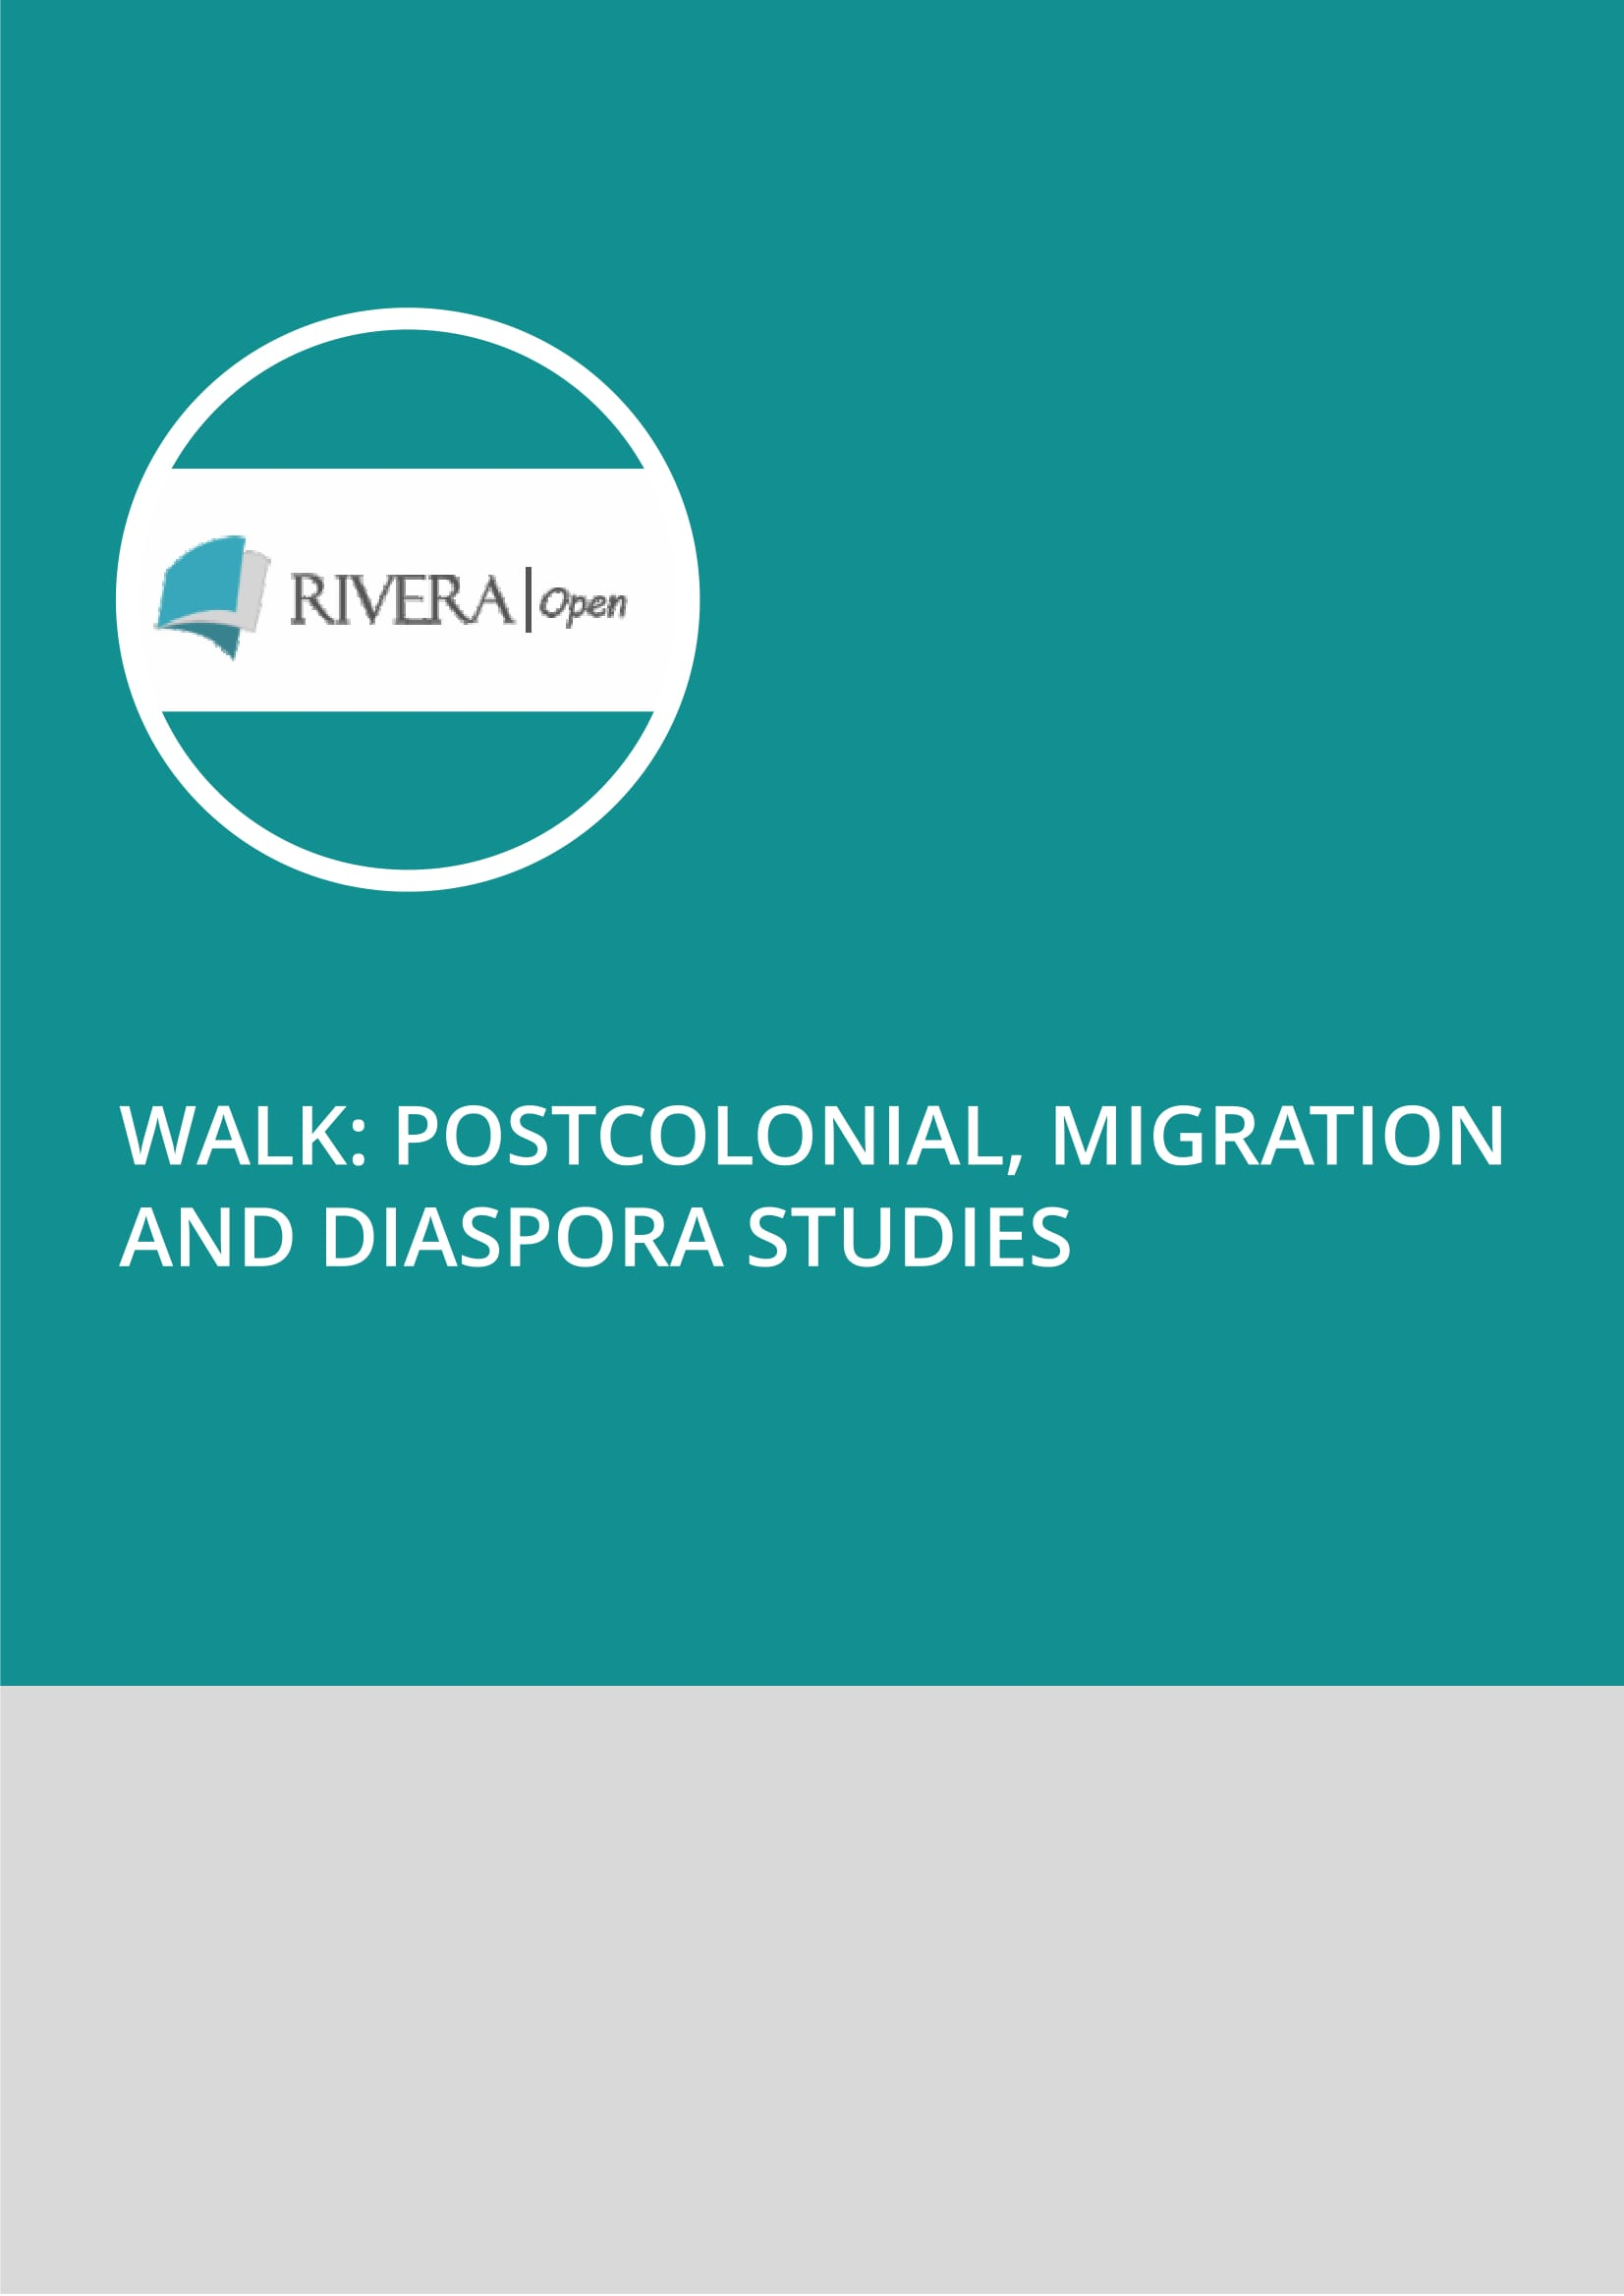 Walk: Postcolonial, Migration and Diaspora Studies